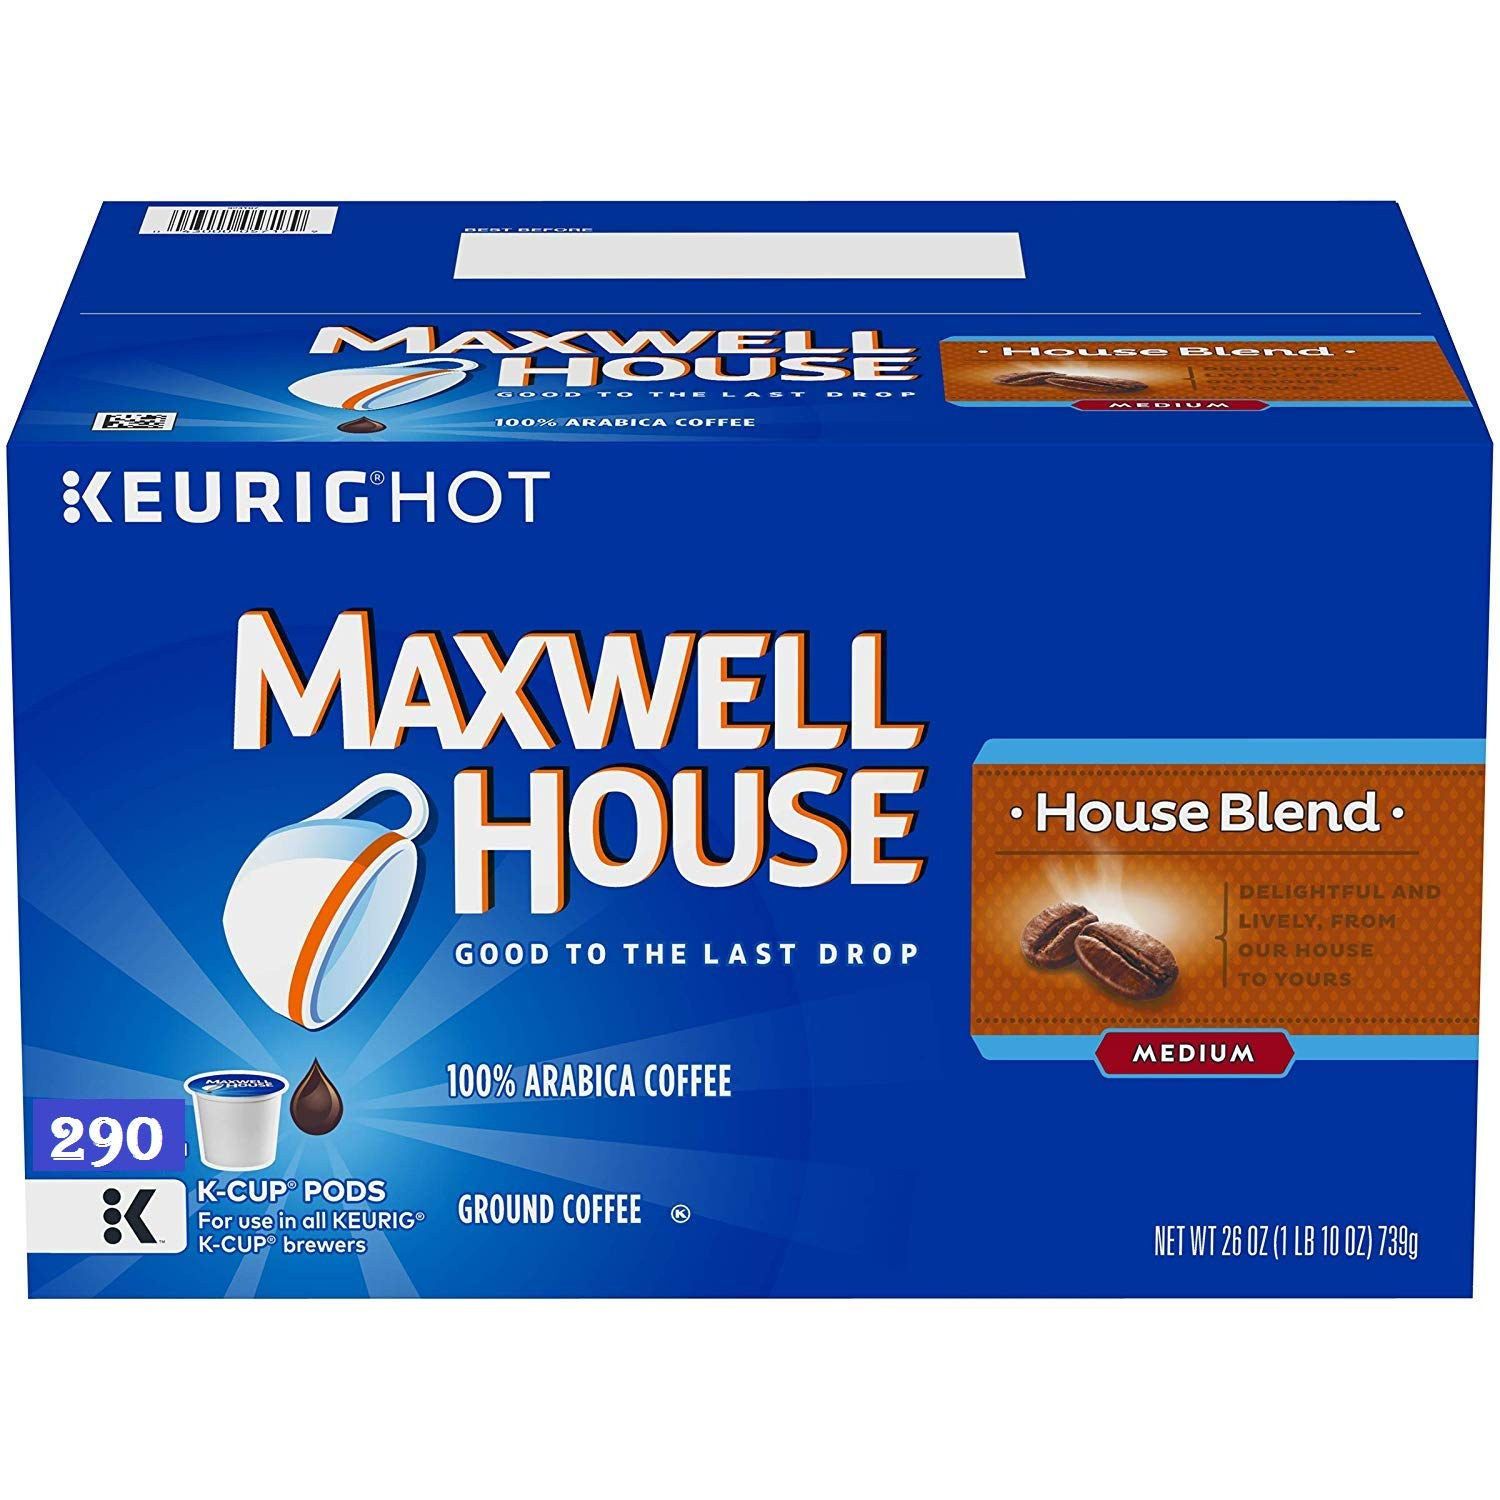 Maxwell House House Blend K-Cup Coffee Pods, 290 ct Box (290 ct) by MAXWELL HOUSE (Image #1)